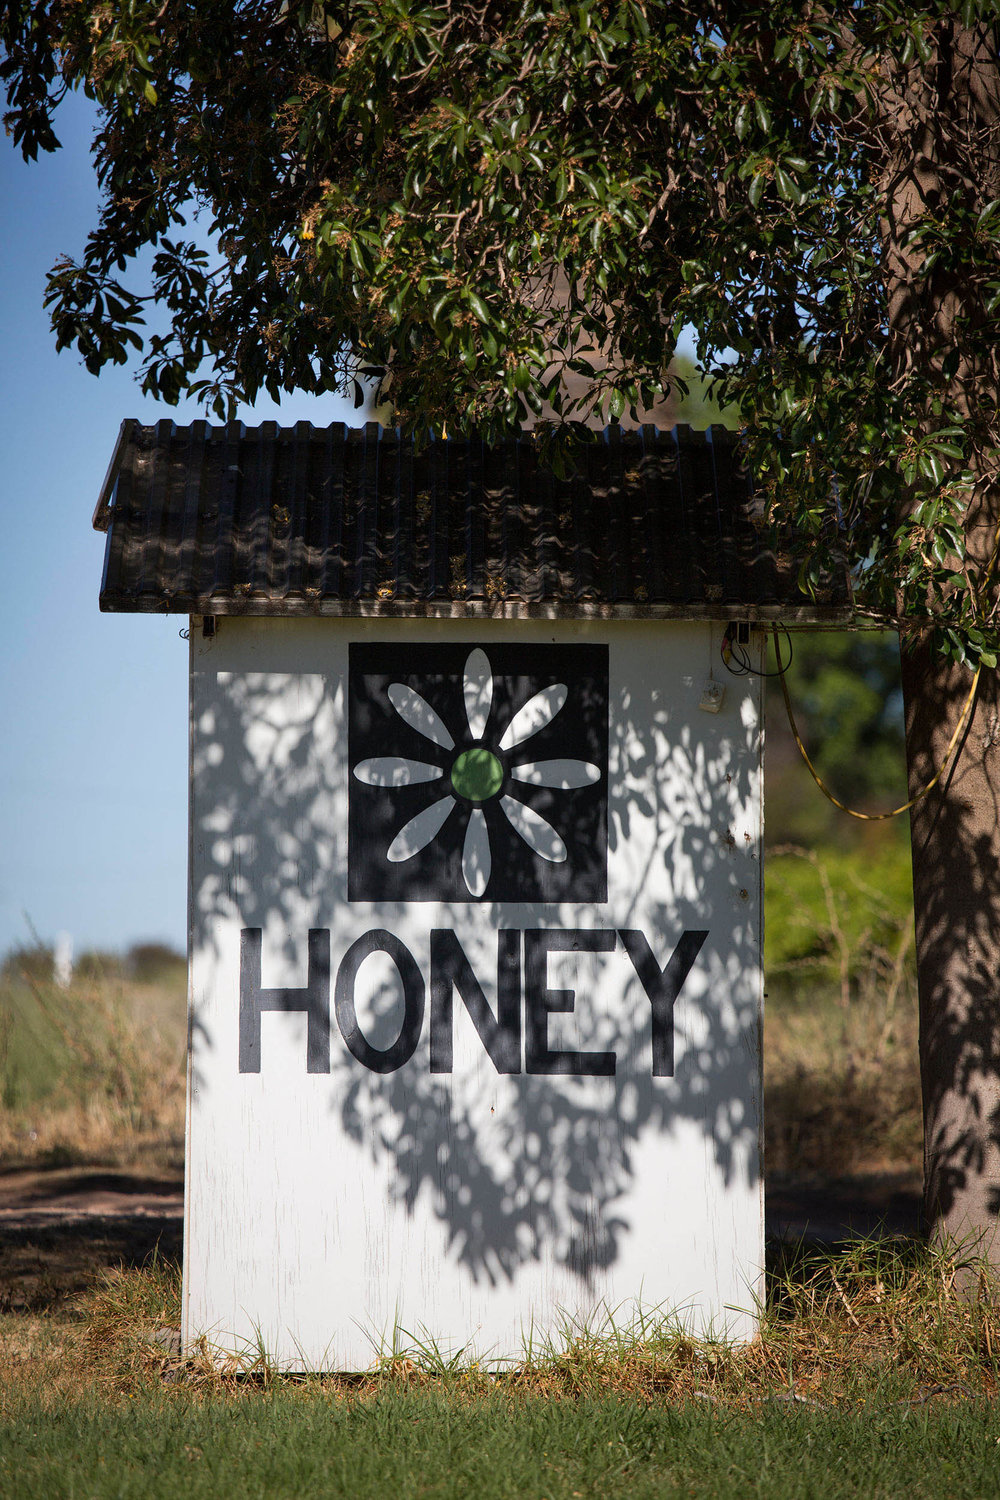 Roadside stall selling honey, Merbein, Victoria.